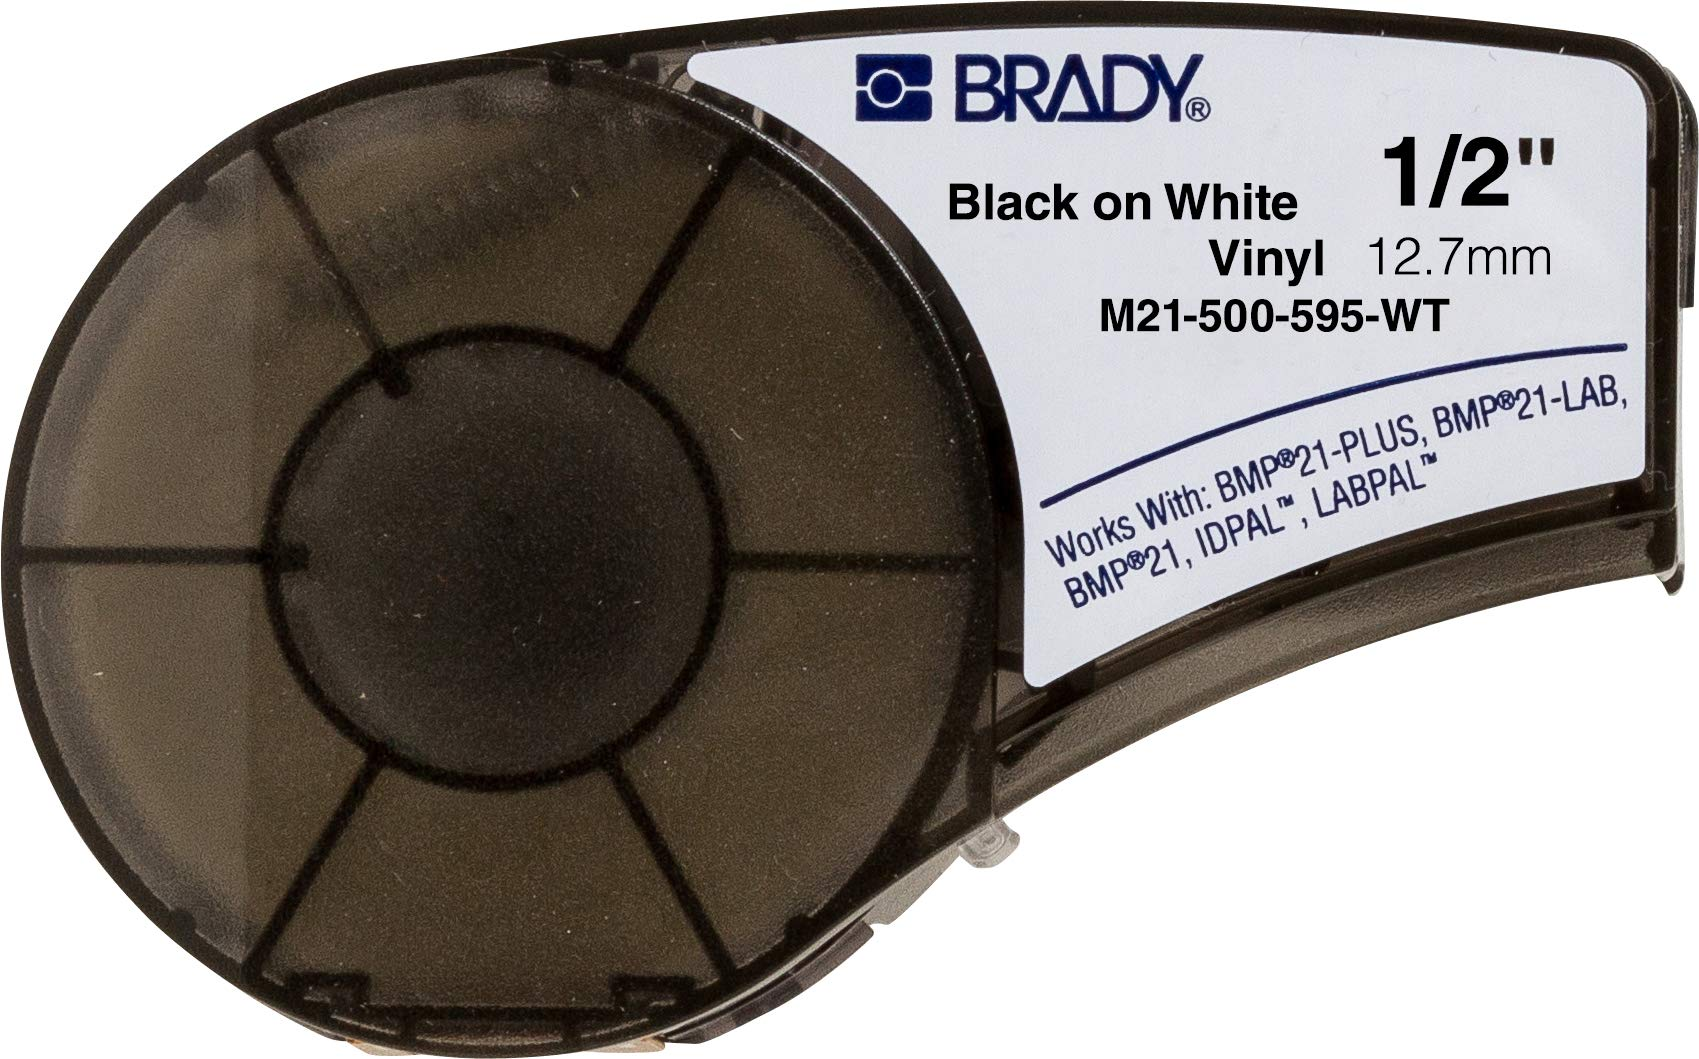 Brady High Adhesion Vinyl Label Tape (M21-500-595-WT) - Black on White Vinyl Film - Compatible with BMP21-PLUS, IDPAL, and LABPAL Label Printers - 21' Length, 0.5'' Width